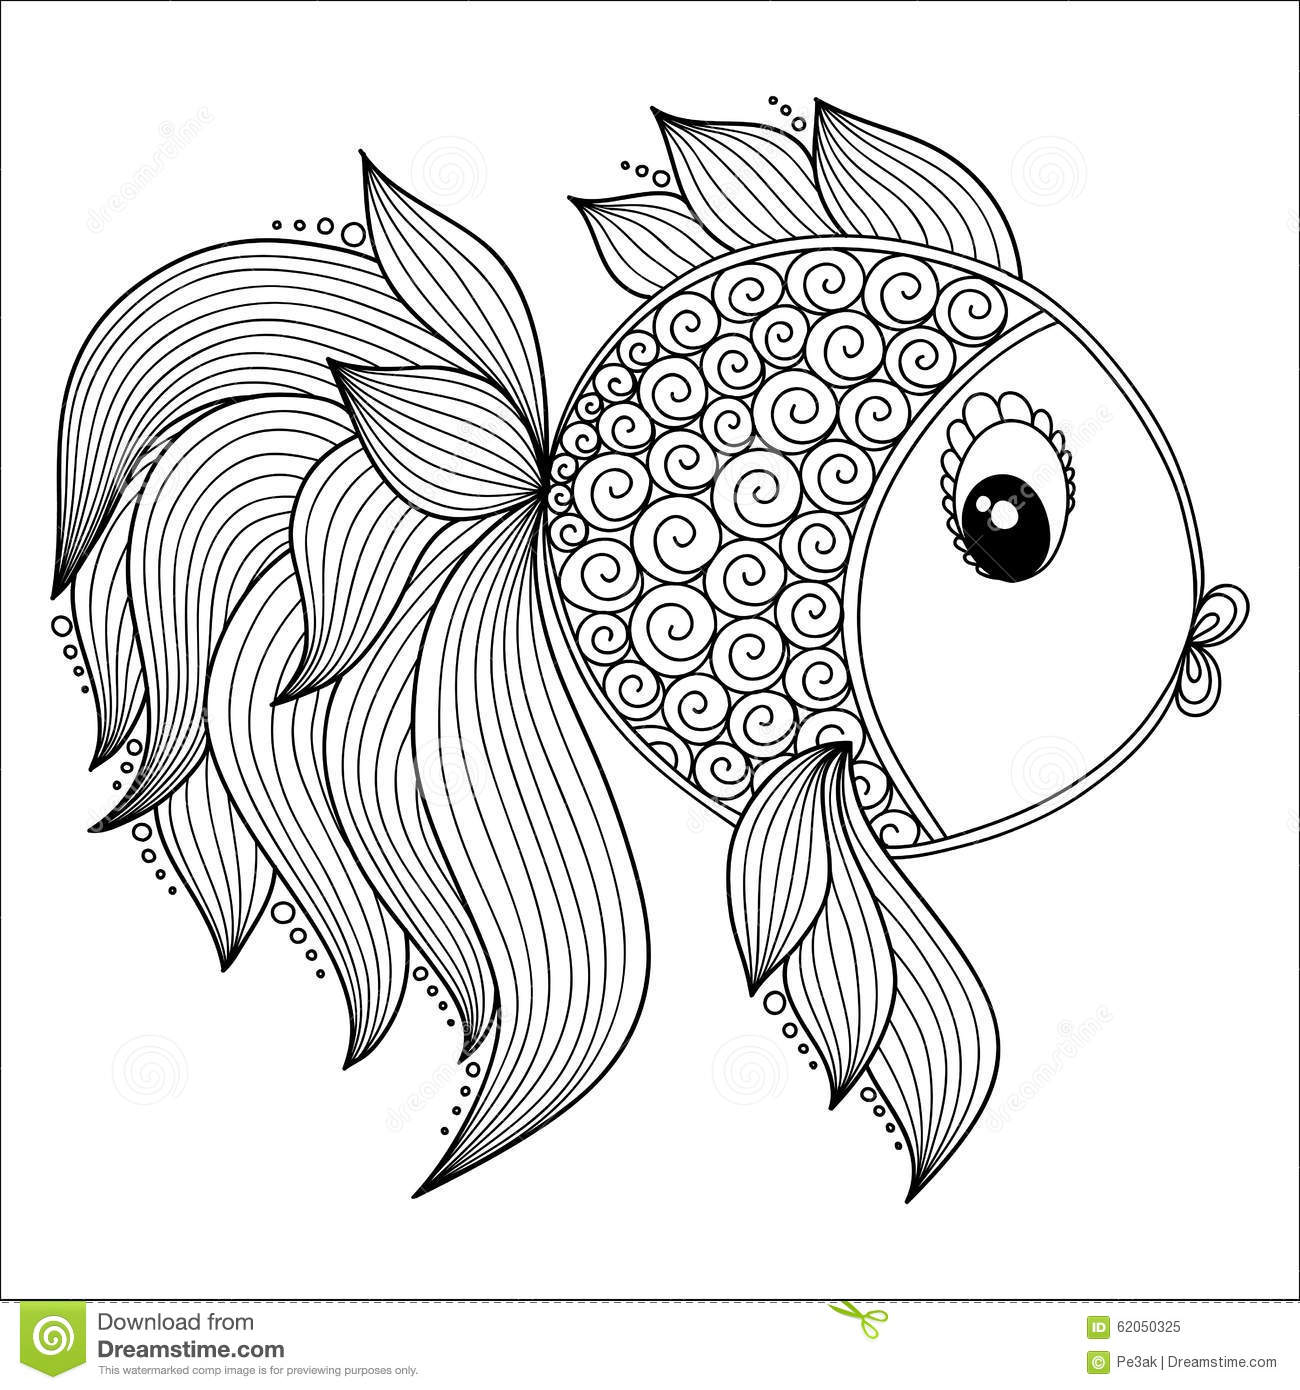 Coloring Animals With Patterns : Pattern for coloring book cute cartoon fish stock vector